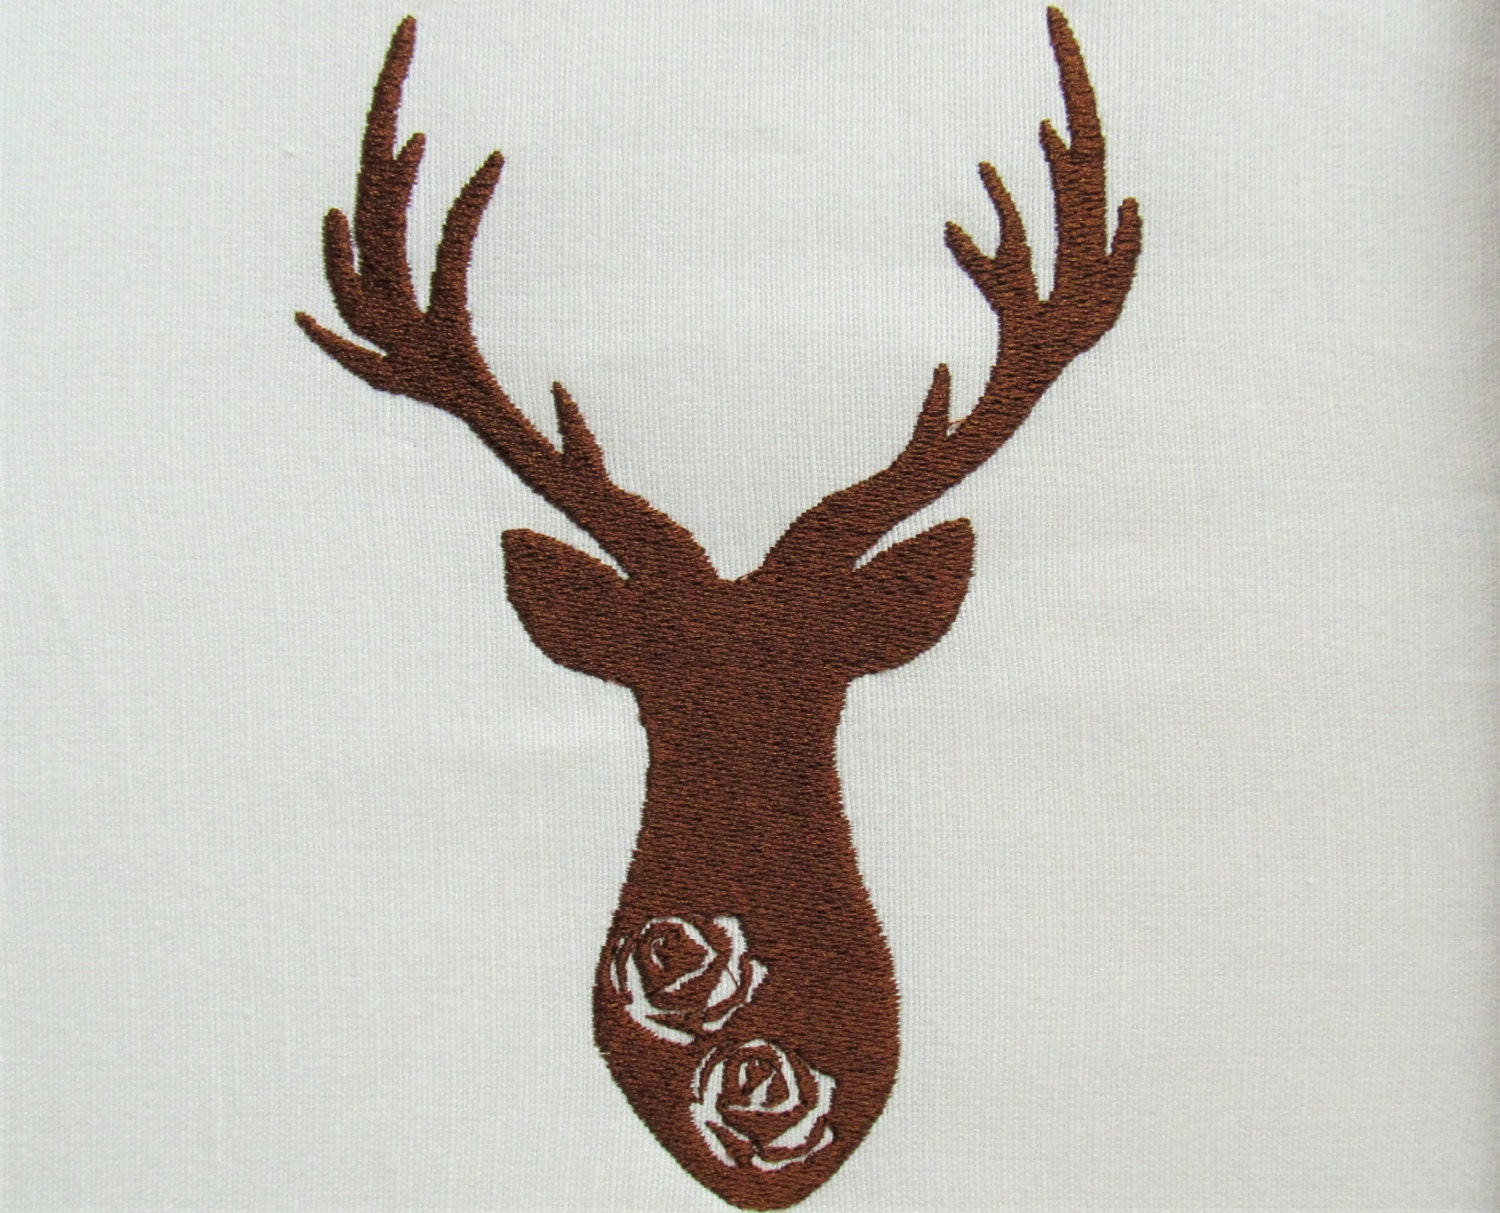 Buck deer embrossed flowers silhouette machine embroidery